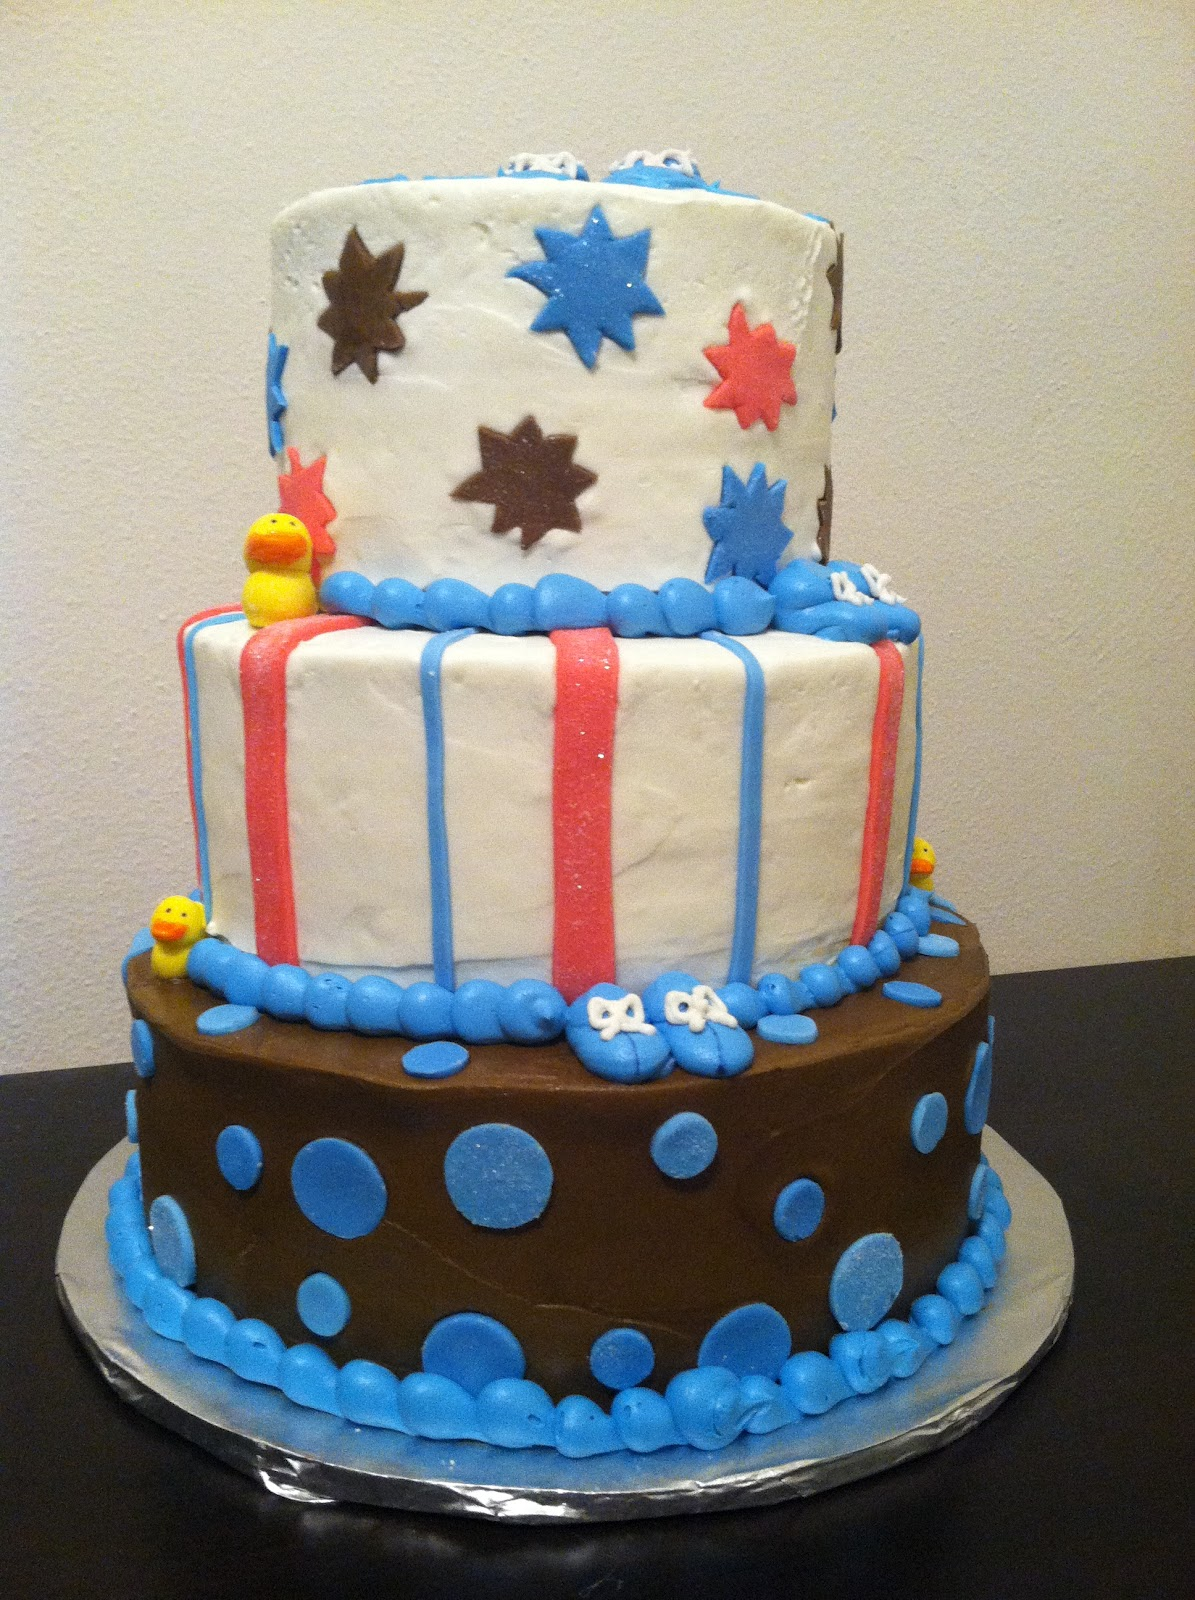 And I Have One More Cake To Make This Week My Own Birthday Yes 26th Is Tomorrow Good Friend Jessica Who Turned 25 Past Monday